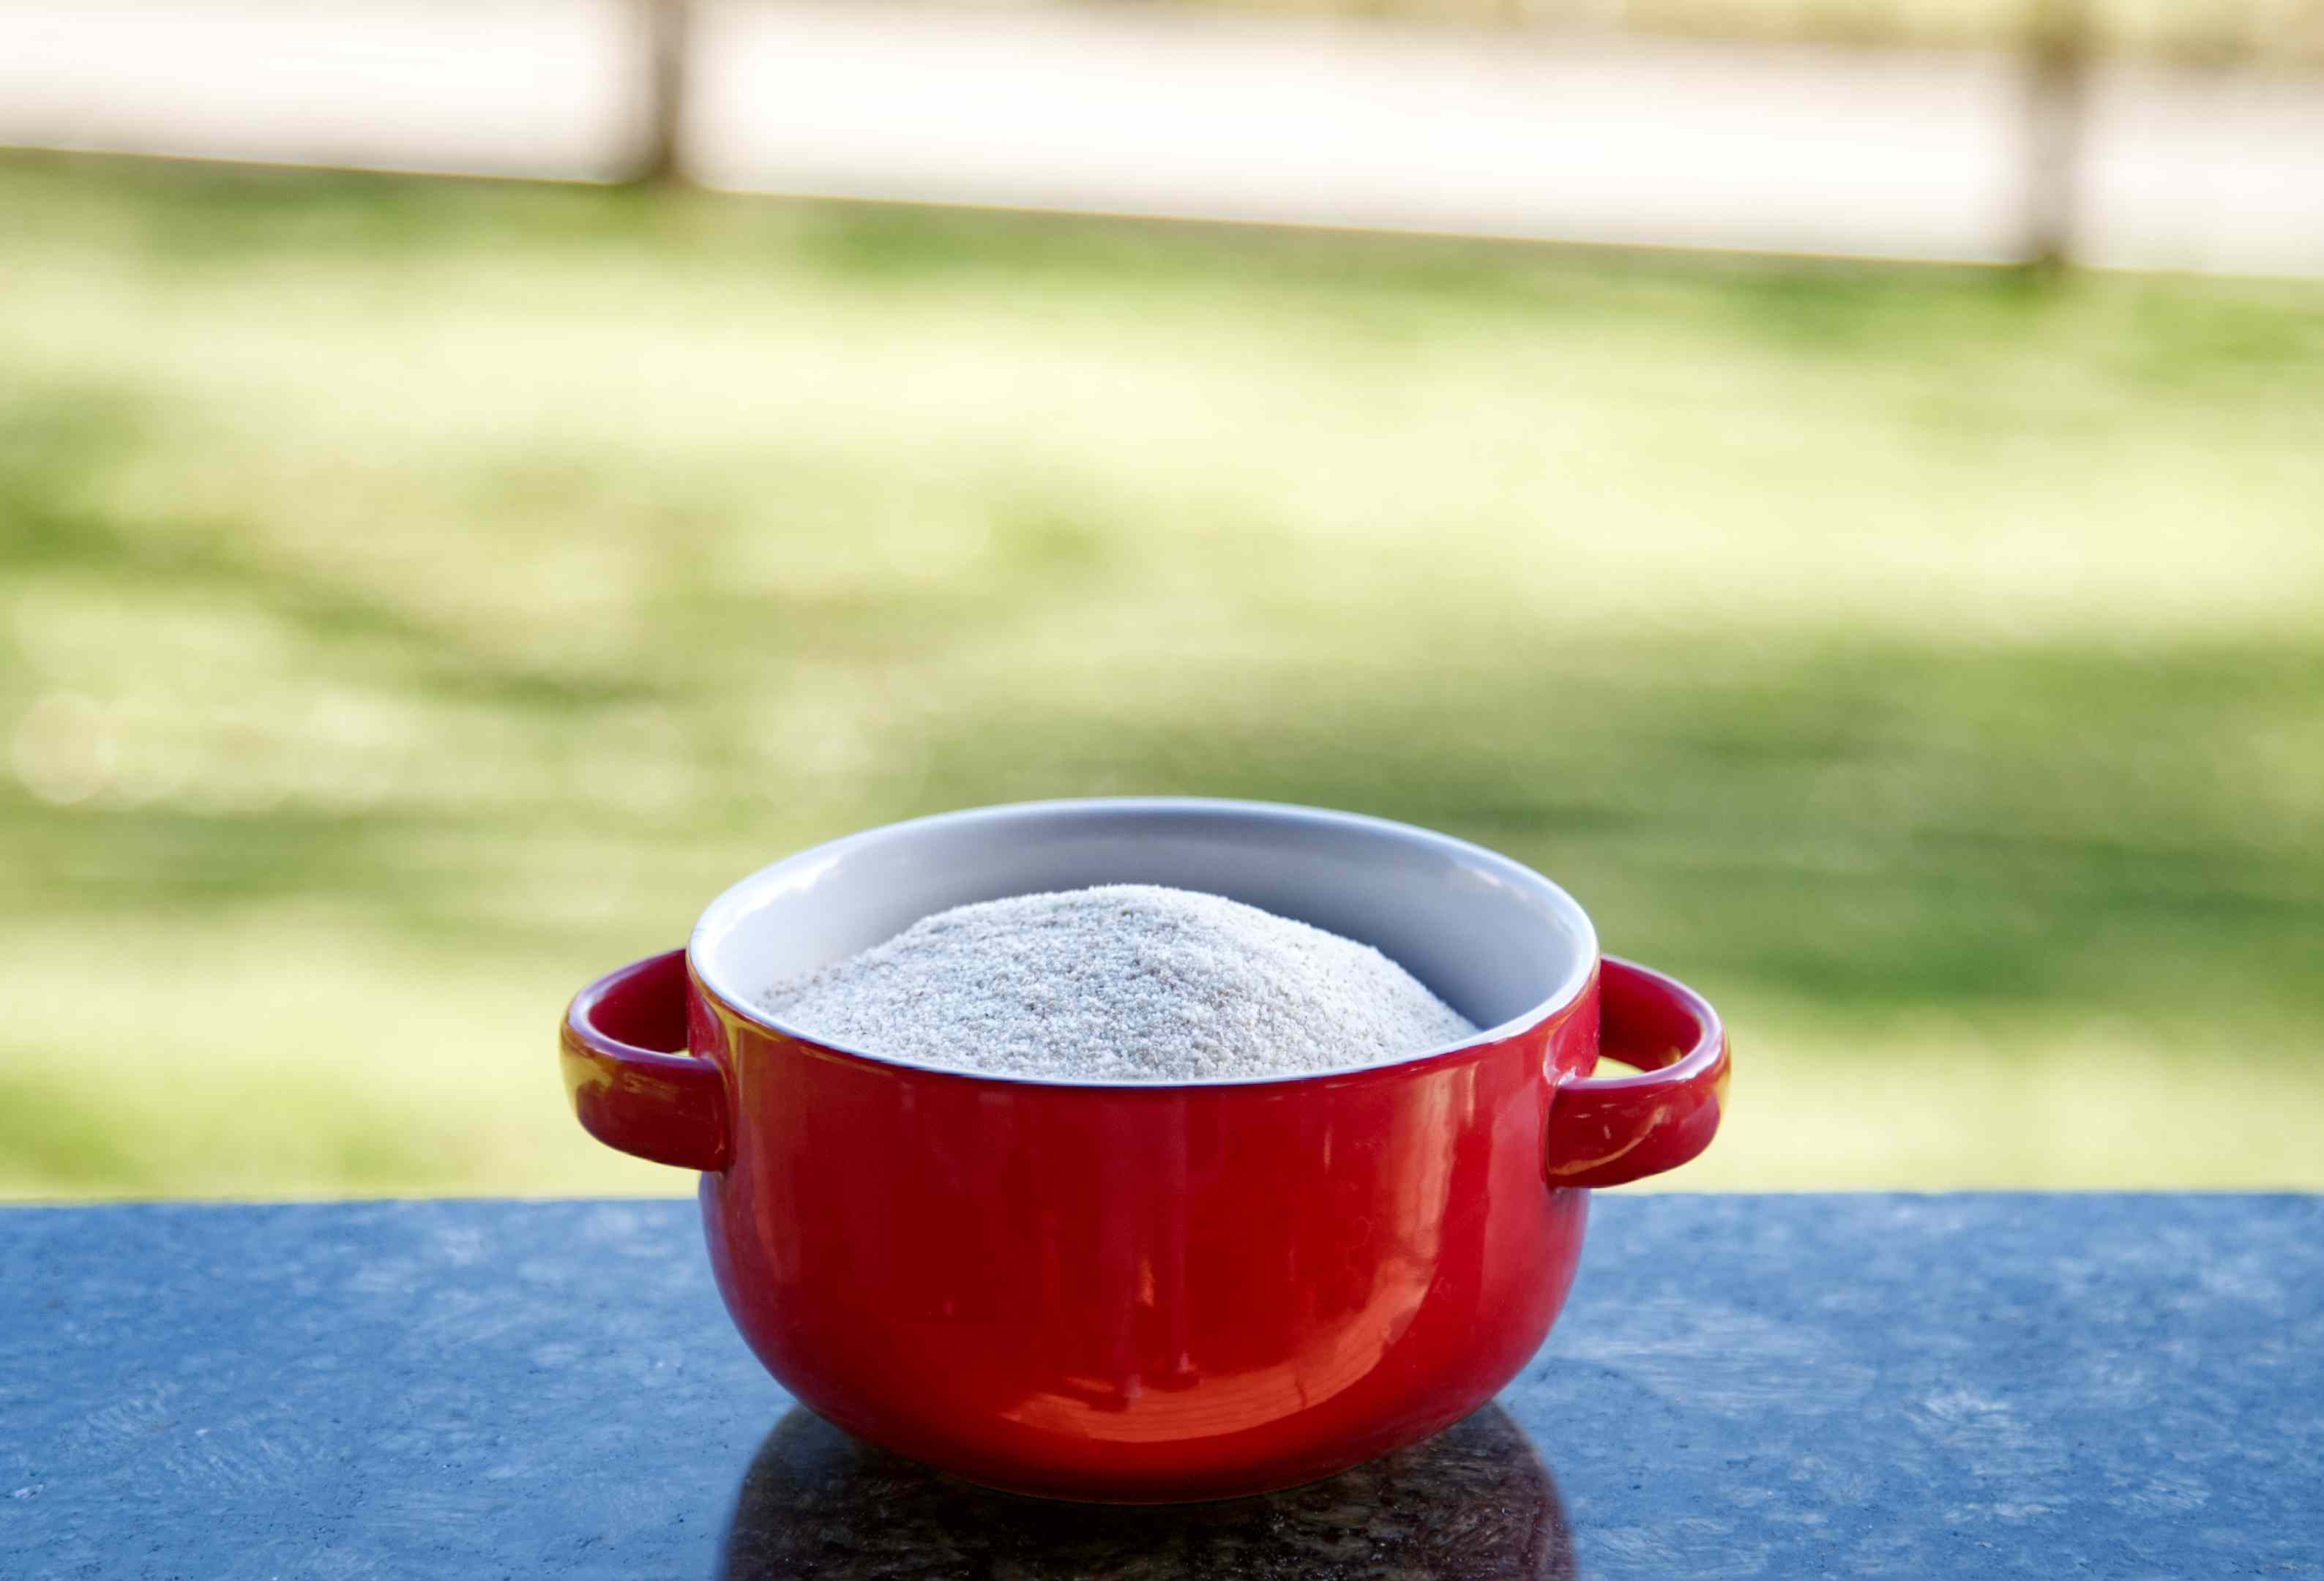 uncooked cream of wheat in red ceramic bowl with handles outside on granite table